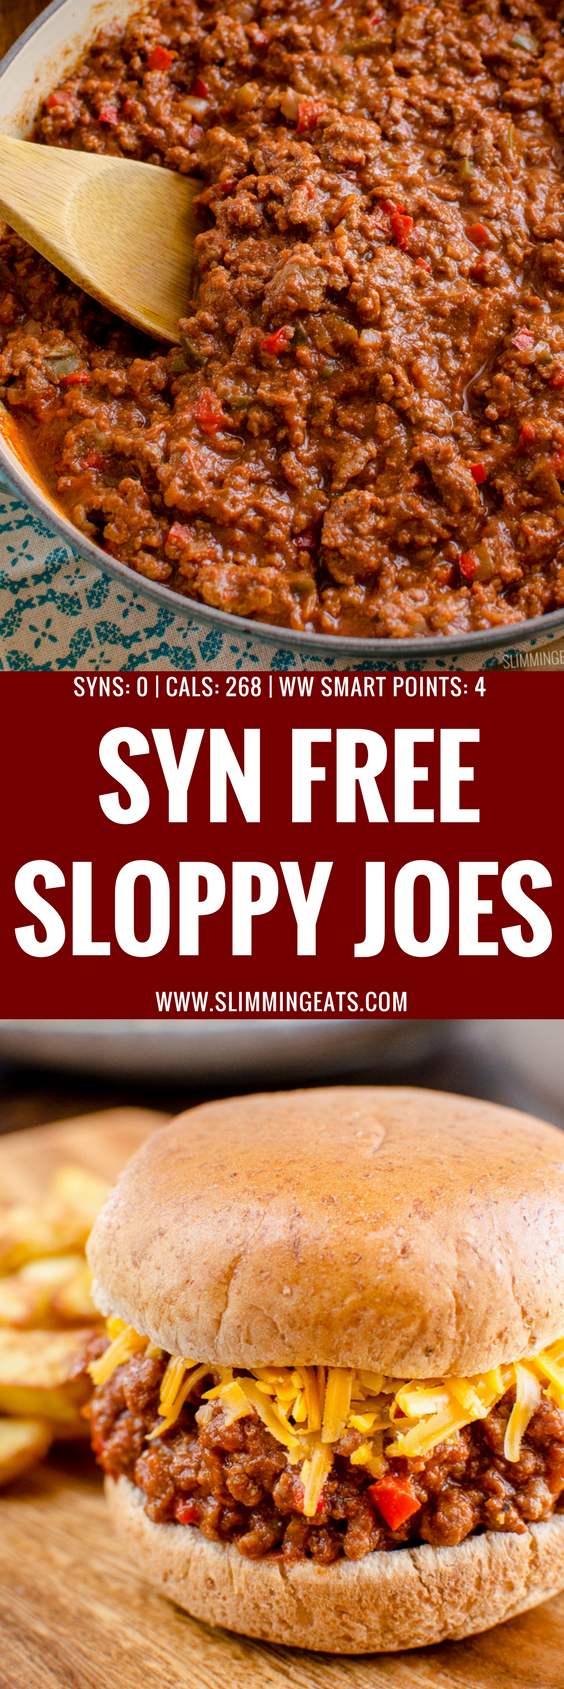 There is nothing more comforting and hearty than some Sloppy Joes mixture, sandwich between bread and some cheese. It's a sweet tangy delicious combination and the whole family will love it. | www.slimmingeats.com